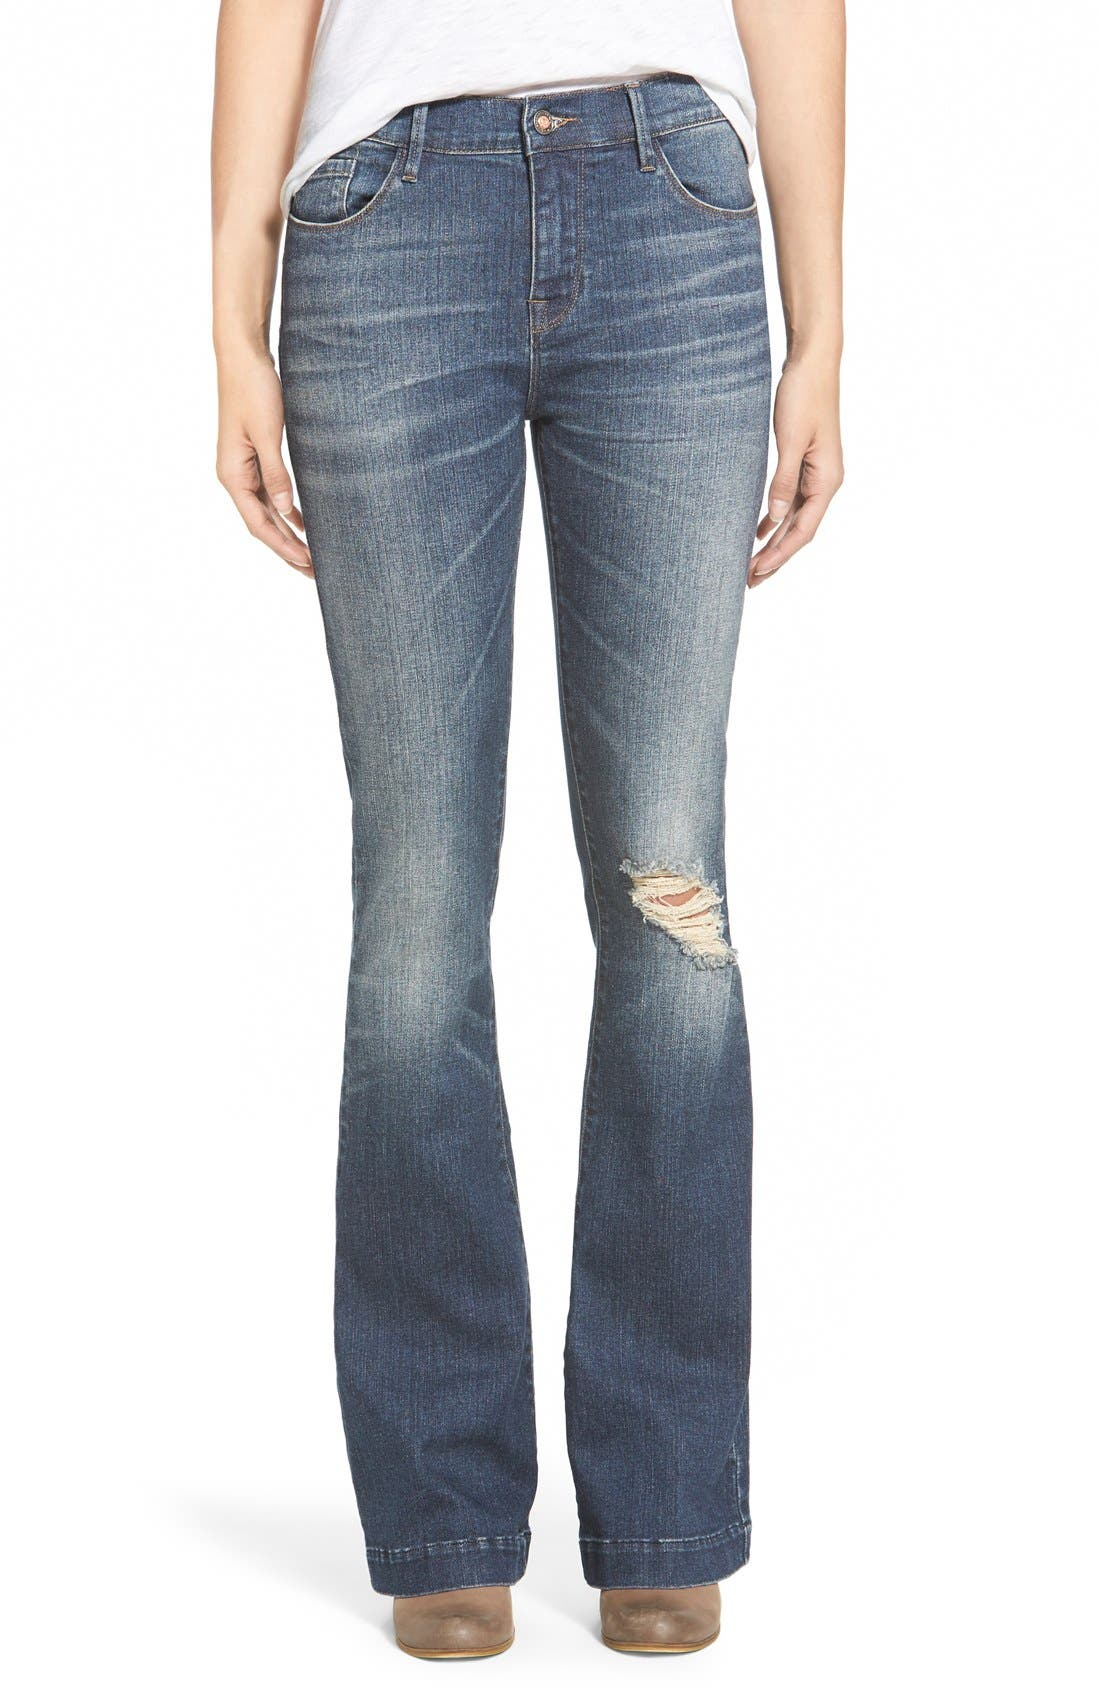 Alternate Image 1 Selected - On Twelfth 'Taylor' Flare Girlfriend Jeans (Klamath Falls Medium Tint)